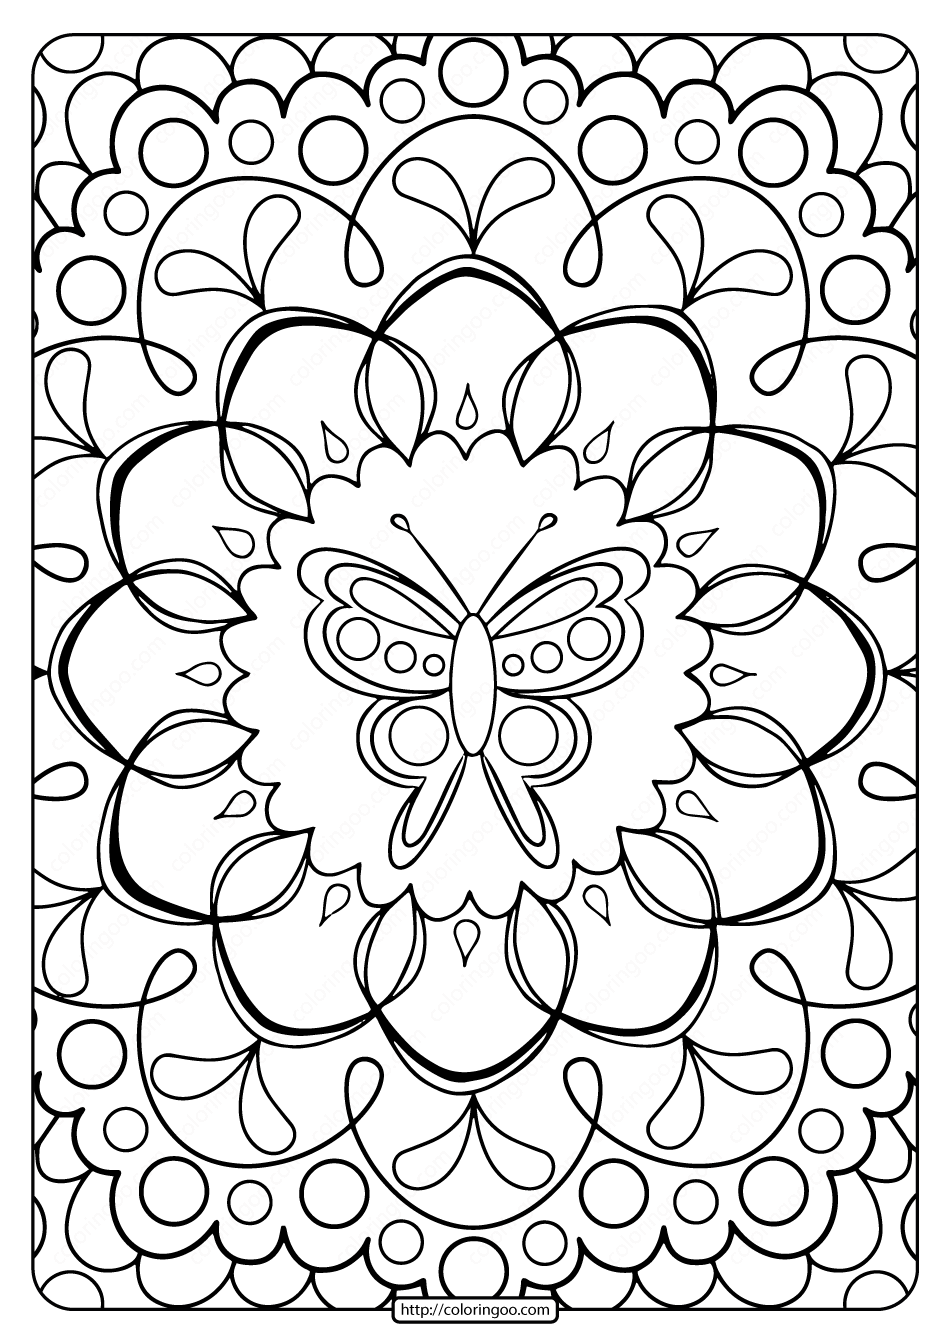 full size coloring sheets download the full size mandala on the right to print and size sheets full coloring